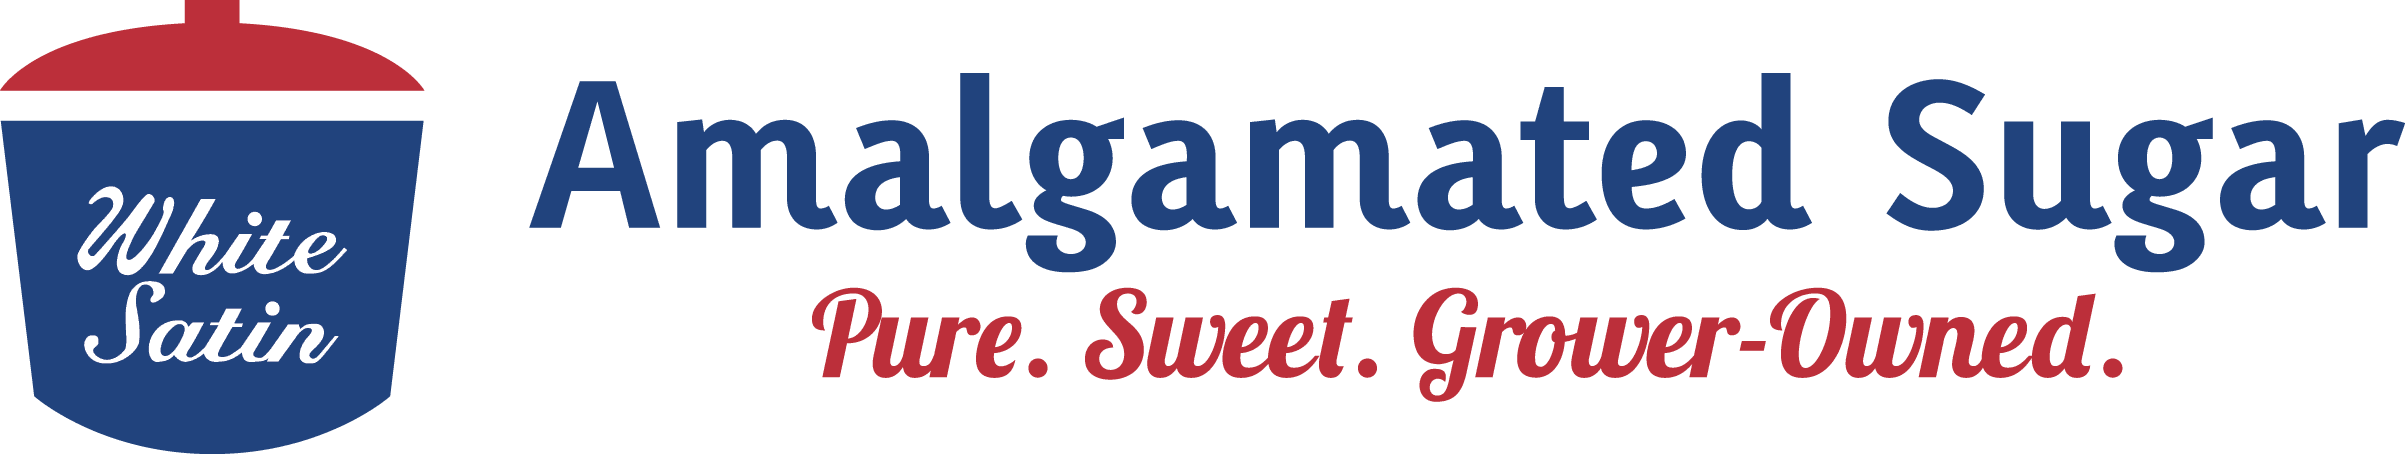 Amalgamated-Sugar-20180118.png